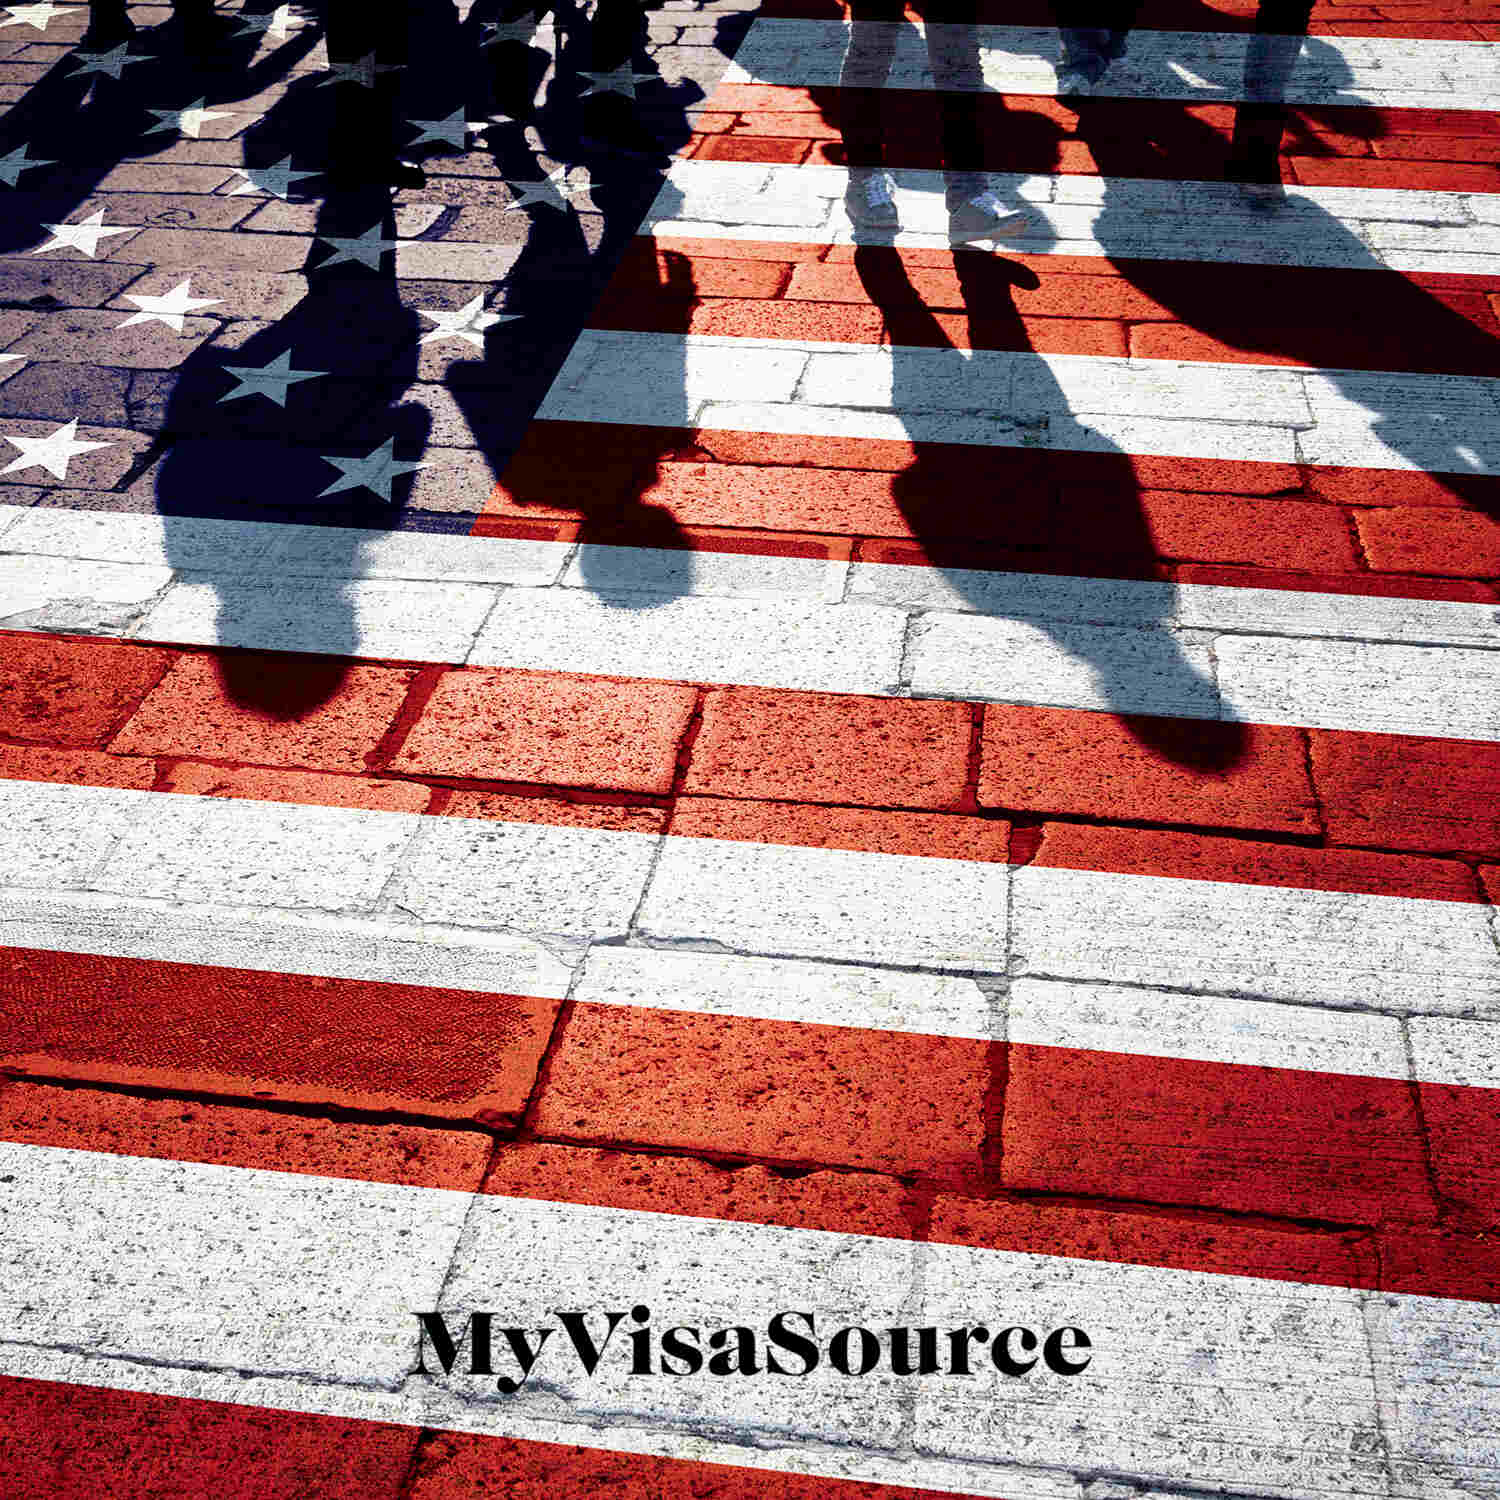 painted american flag on brick ground shadows of people over it my visa source